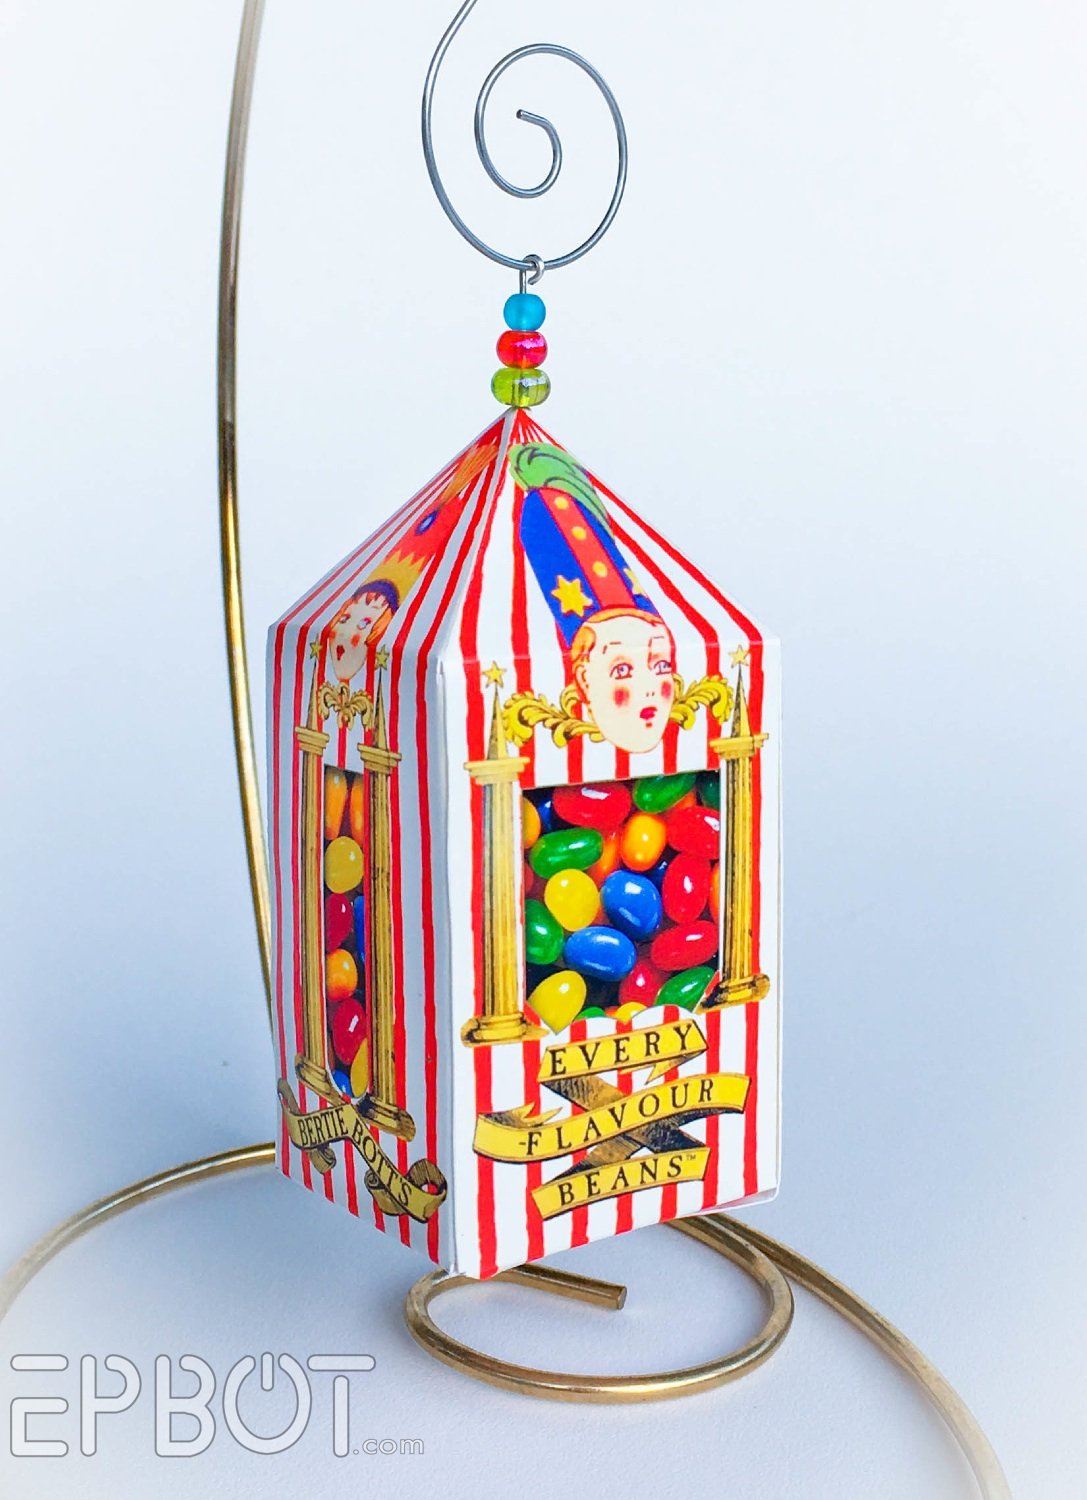 photograph about Bertie Botts Every Flavor Beans Printable called EPBOT: Bertie Botts Each individual Flavour Ornaments: Totally free Papercraft!